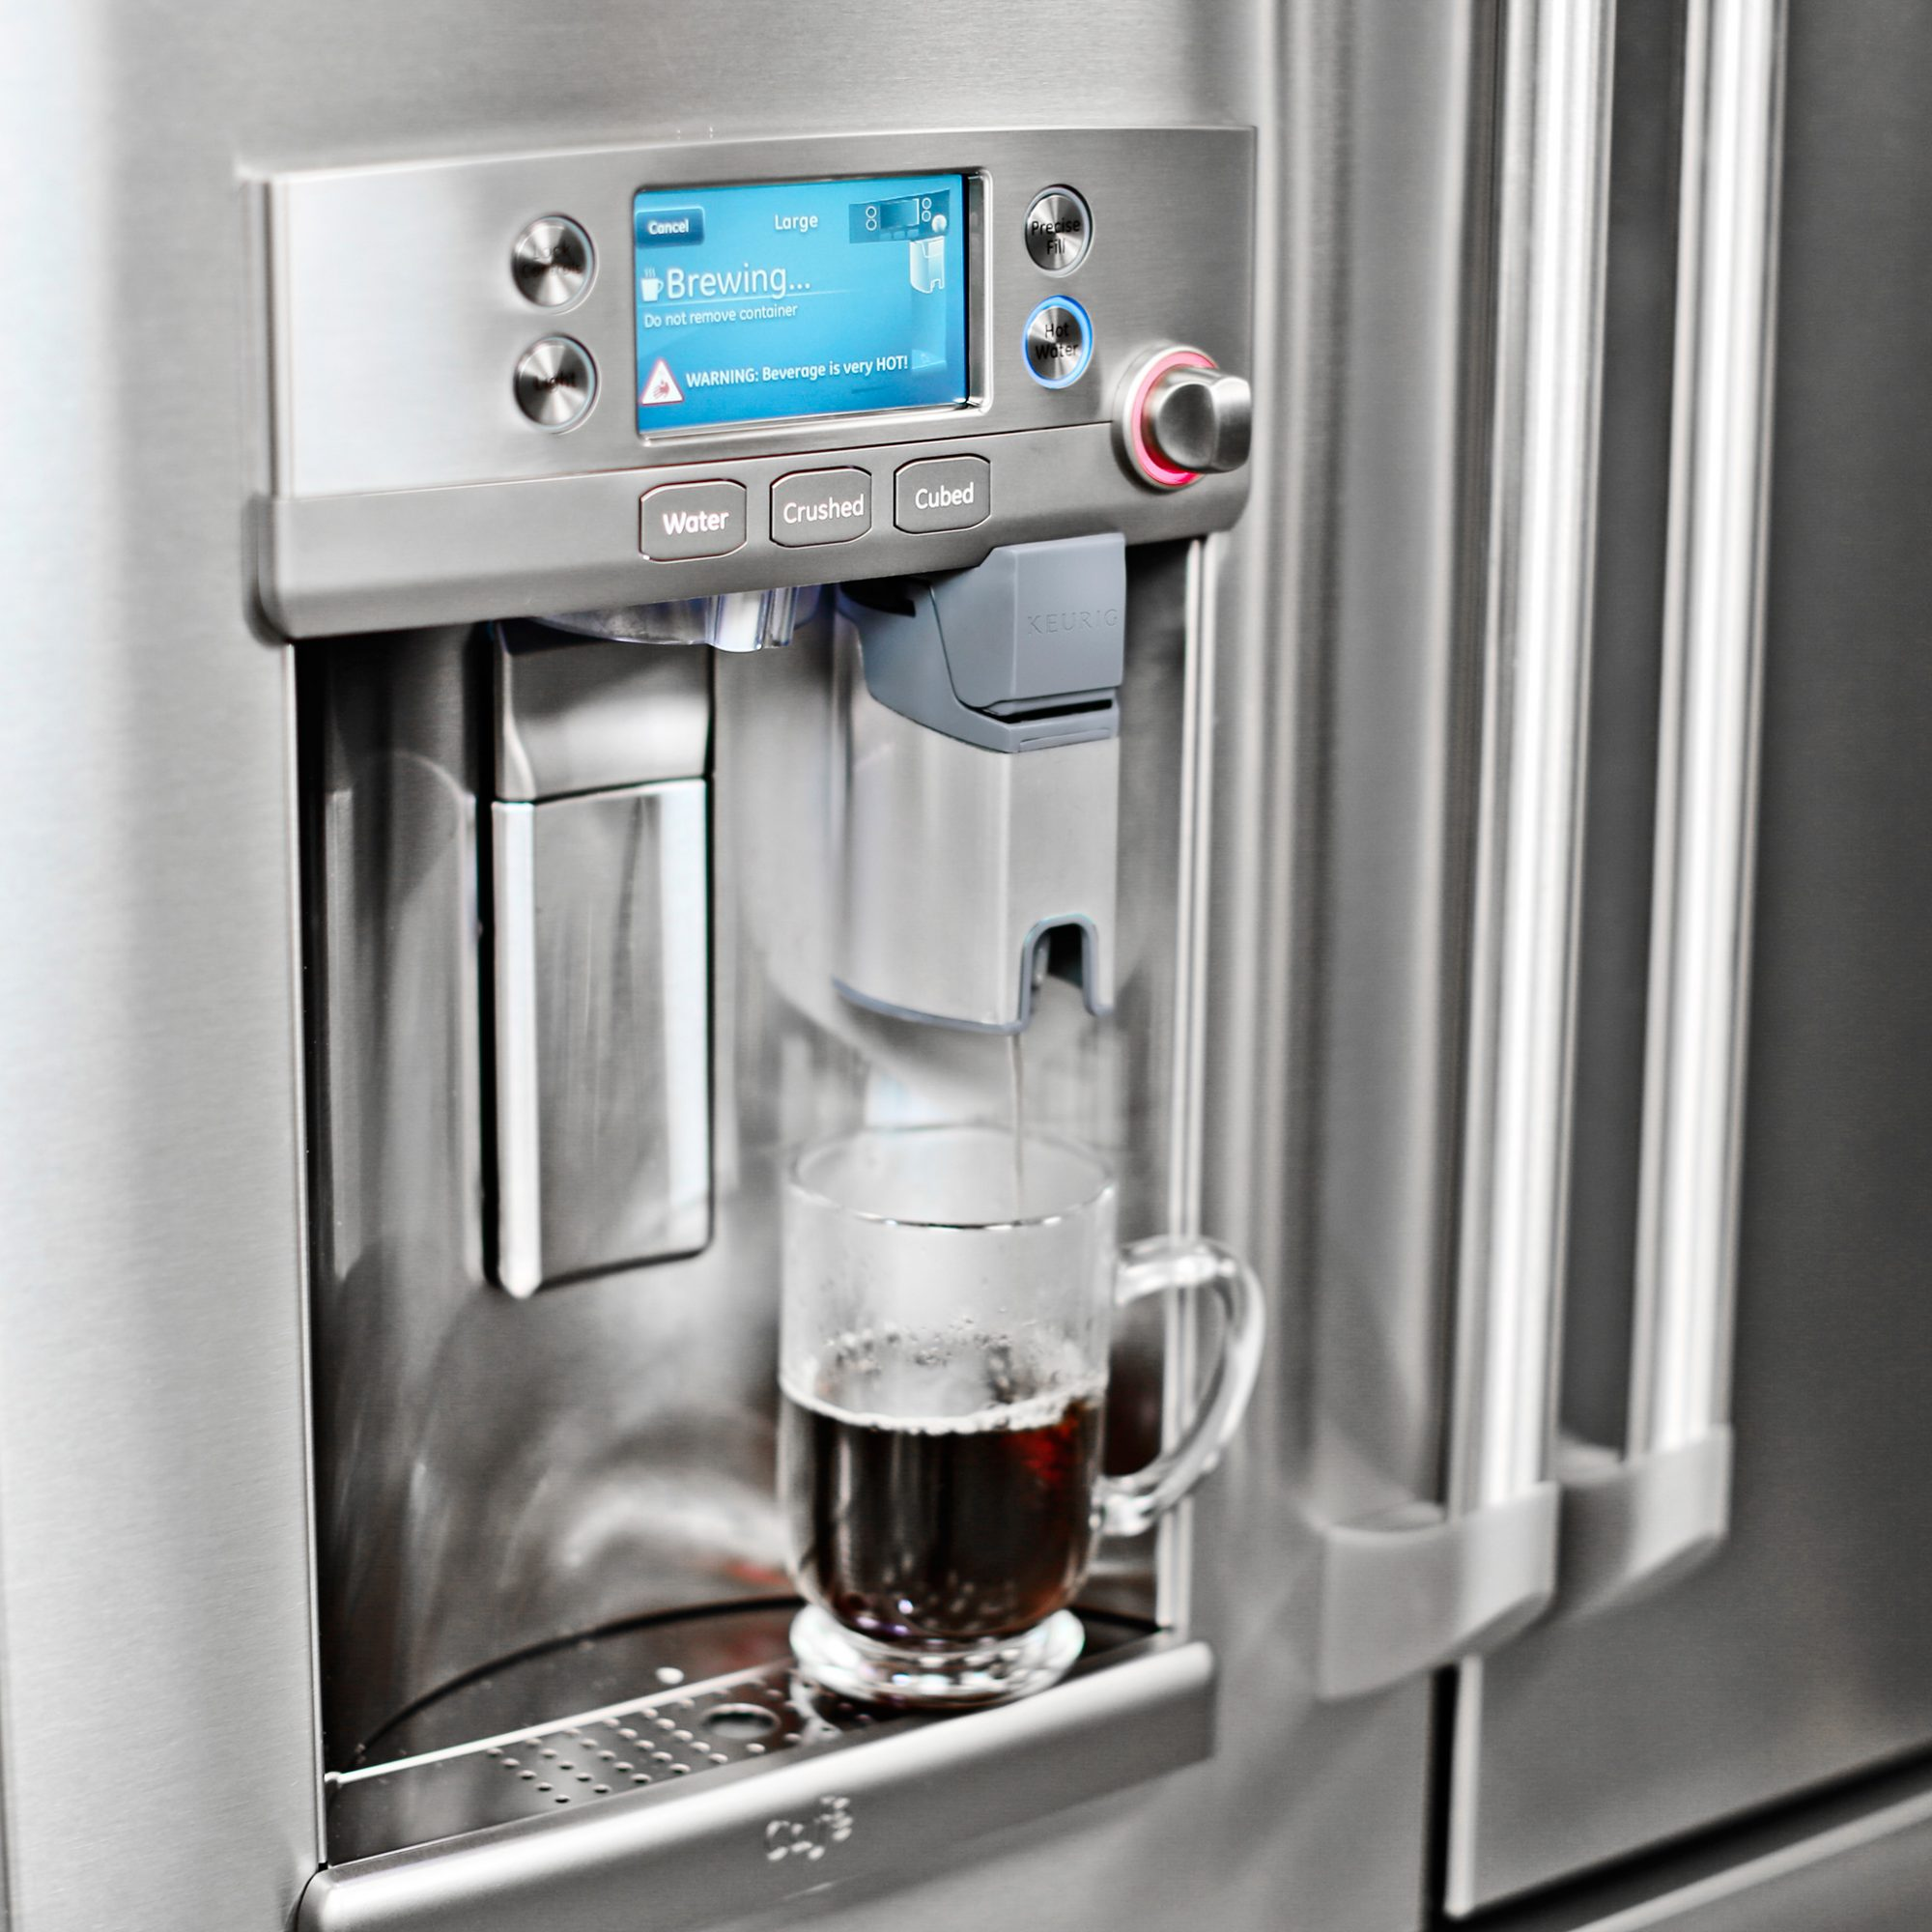 FWX GE CAFE SERIES REFRIGERATOR COFFEE